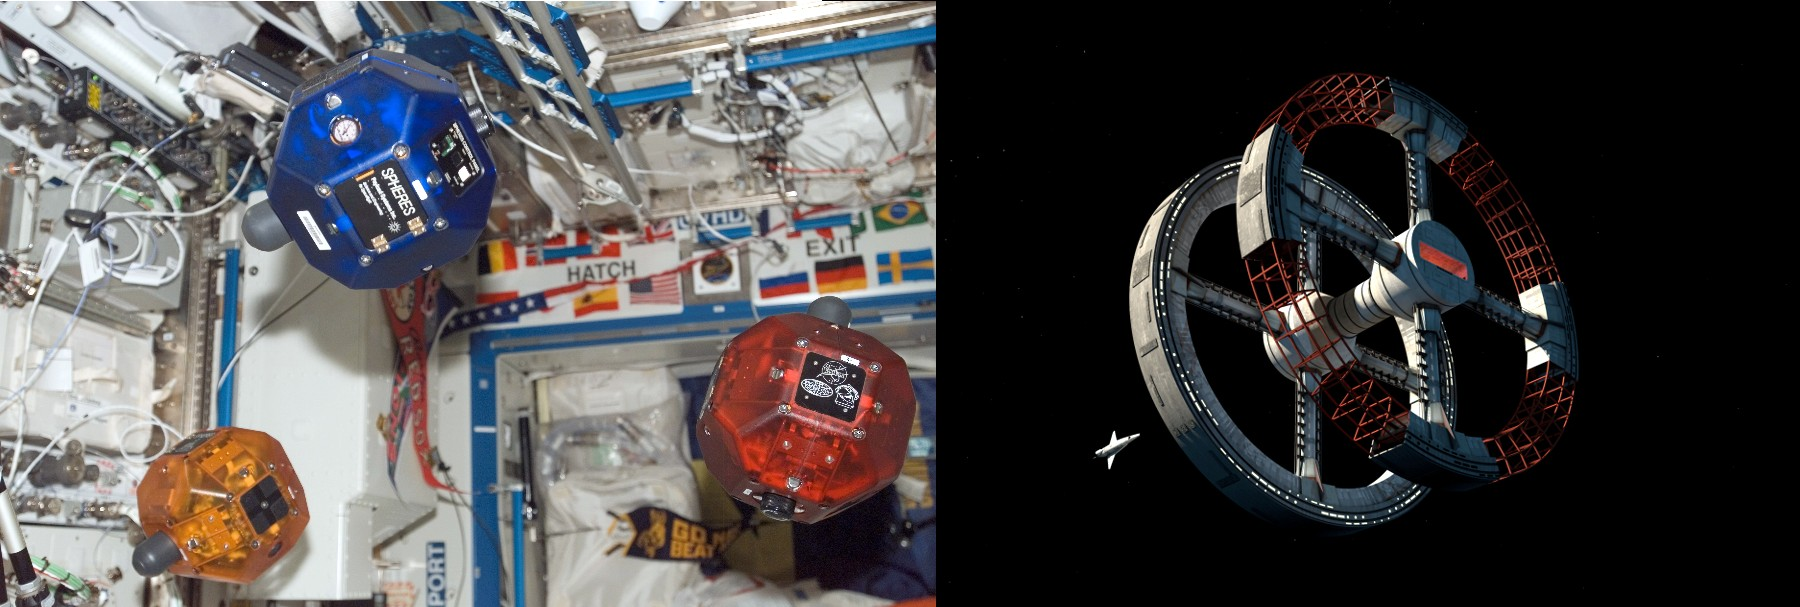 Space Oddsy Station vs ISS Spheres